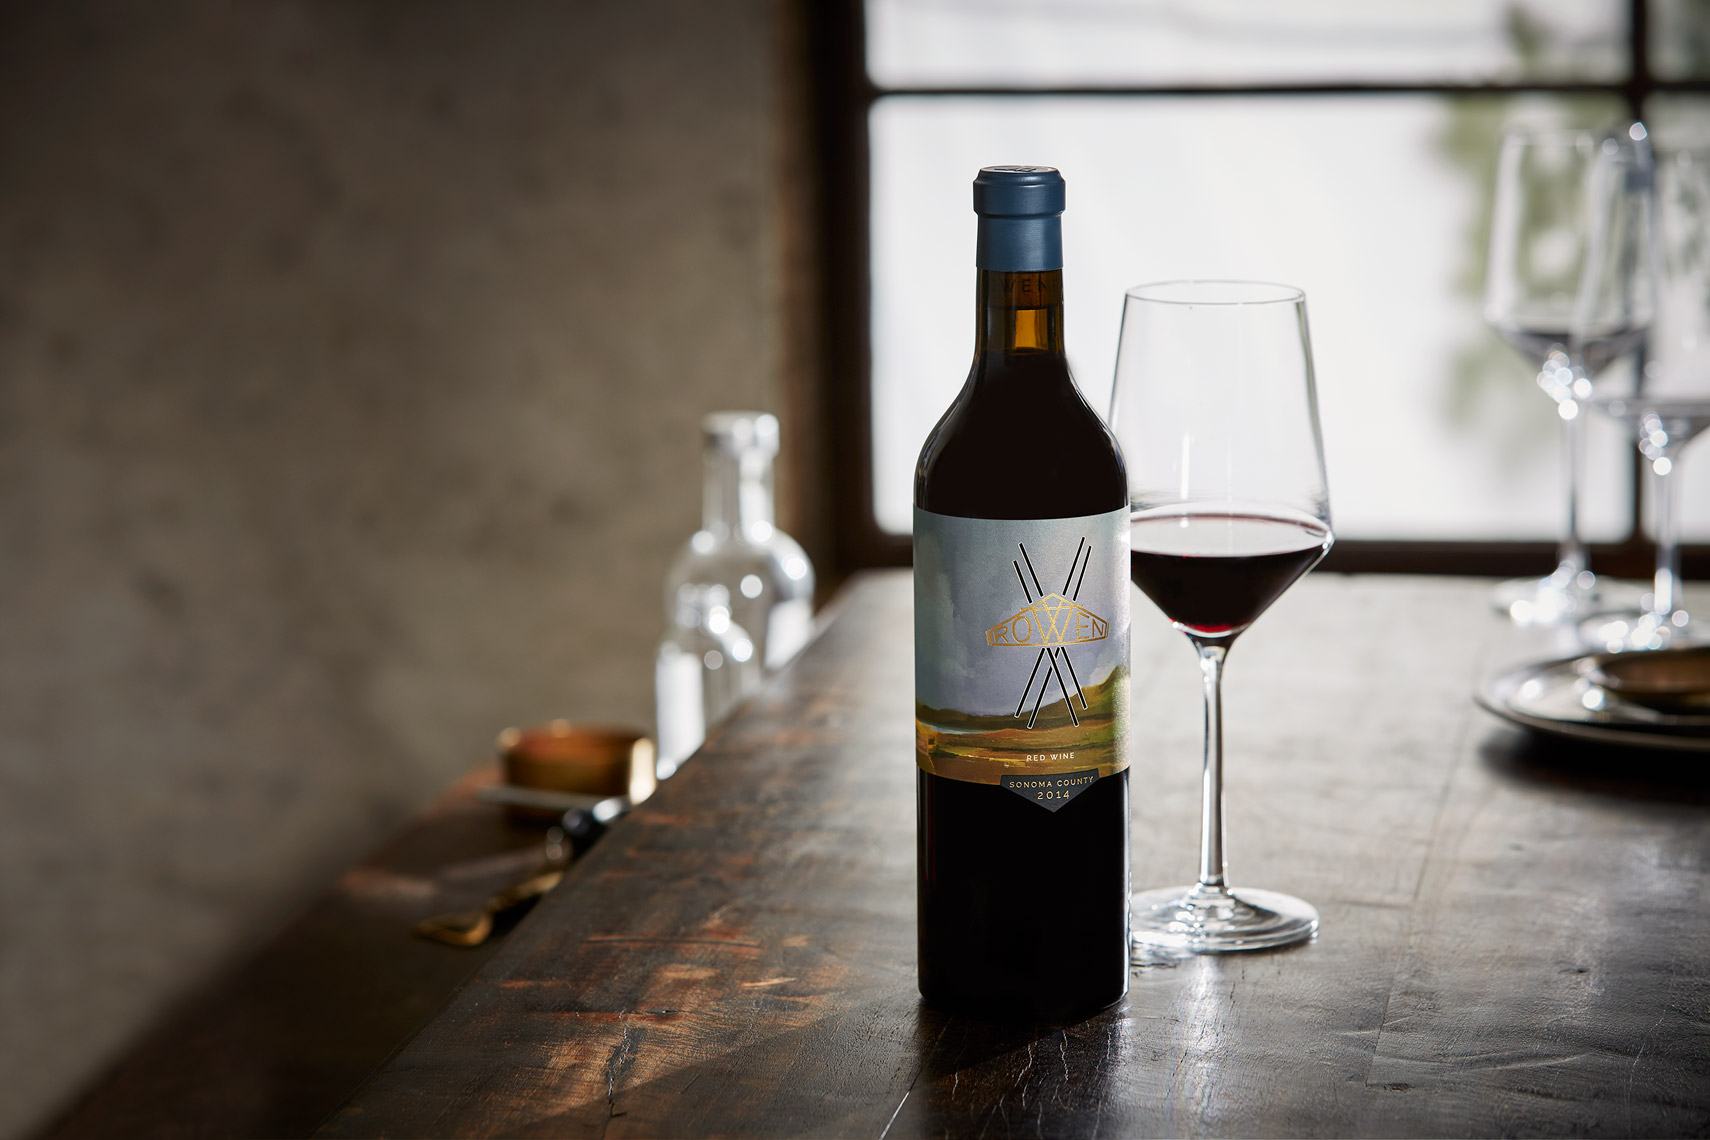 AlanCampbellPhotography, Rowen Wine on a rustic table